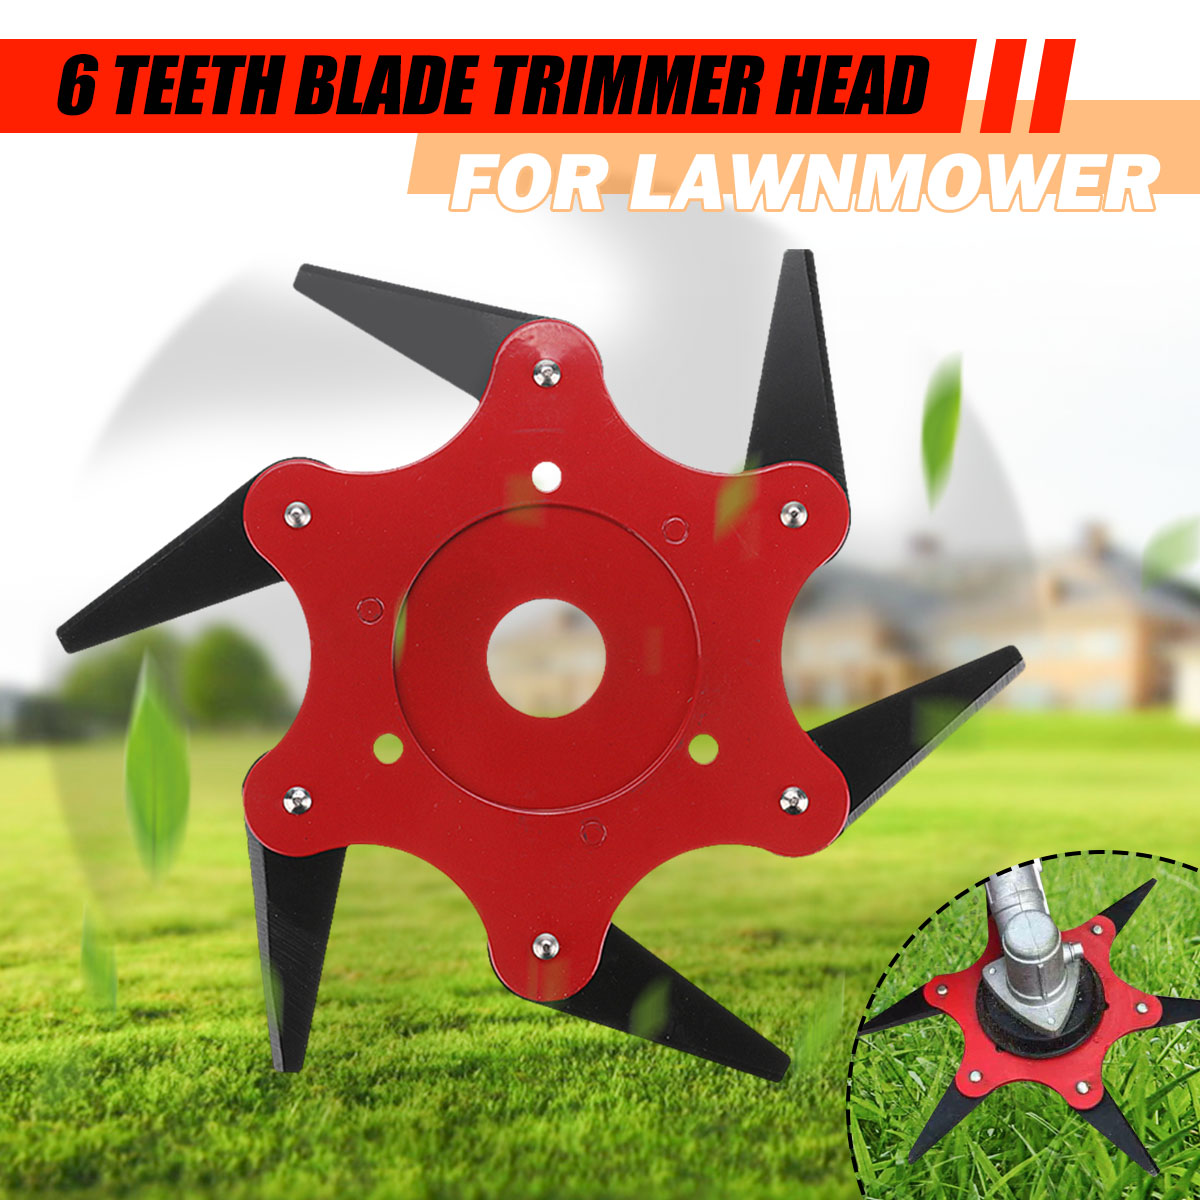 Updated Trimmer Head 65Mn 6 Teeths Blade Trimmer Head Brush Cutter Blade For Lawnmower